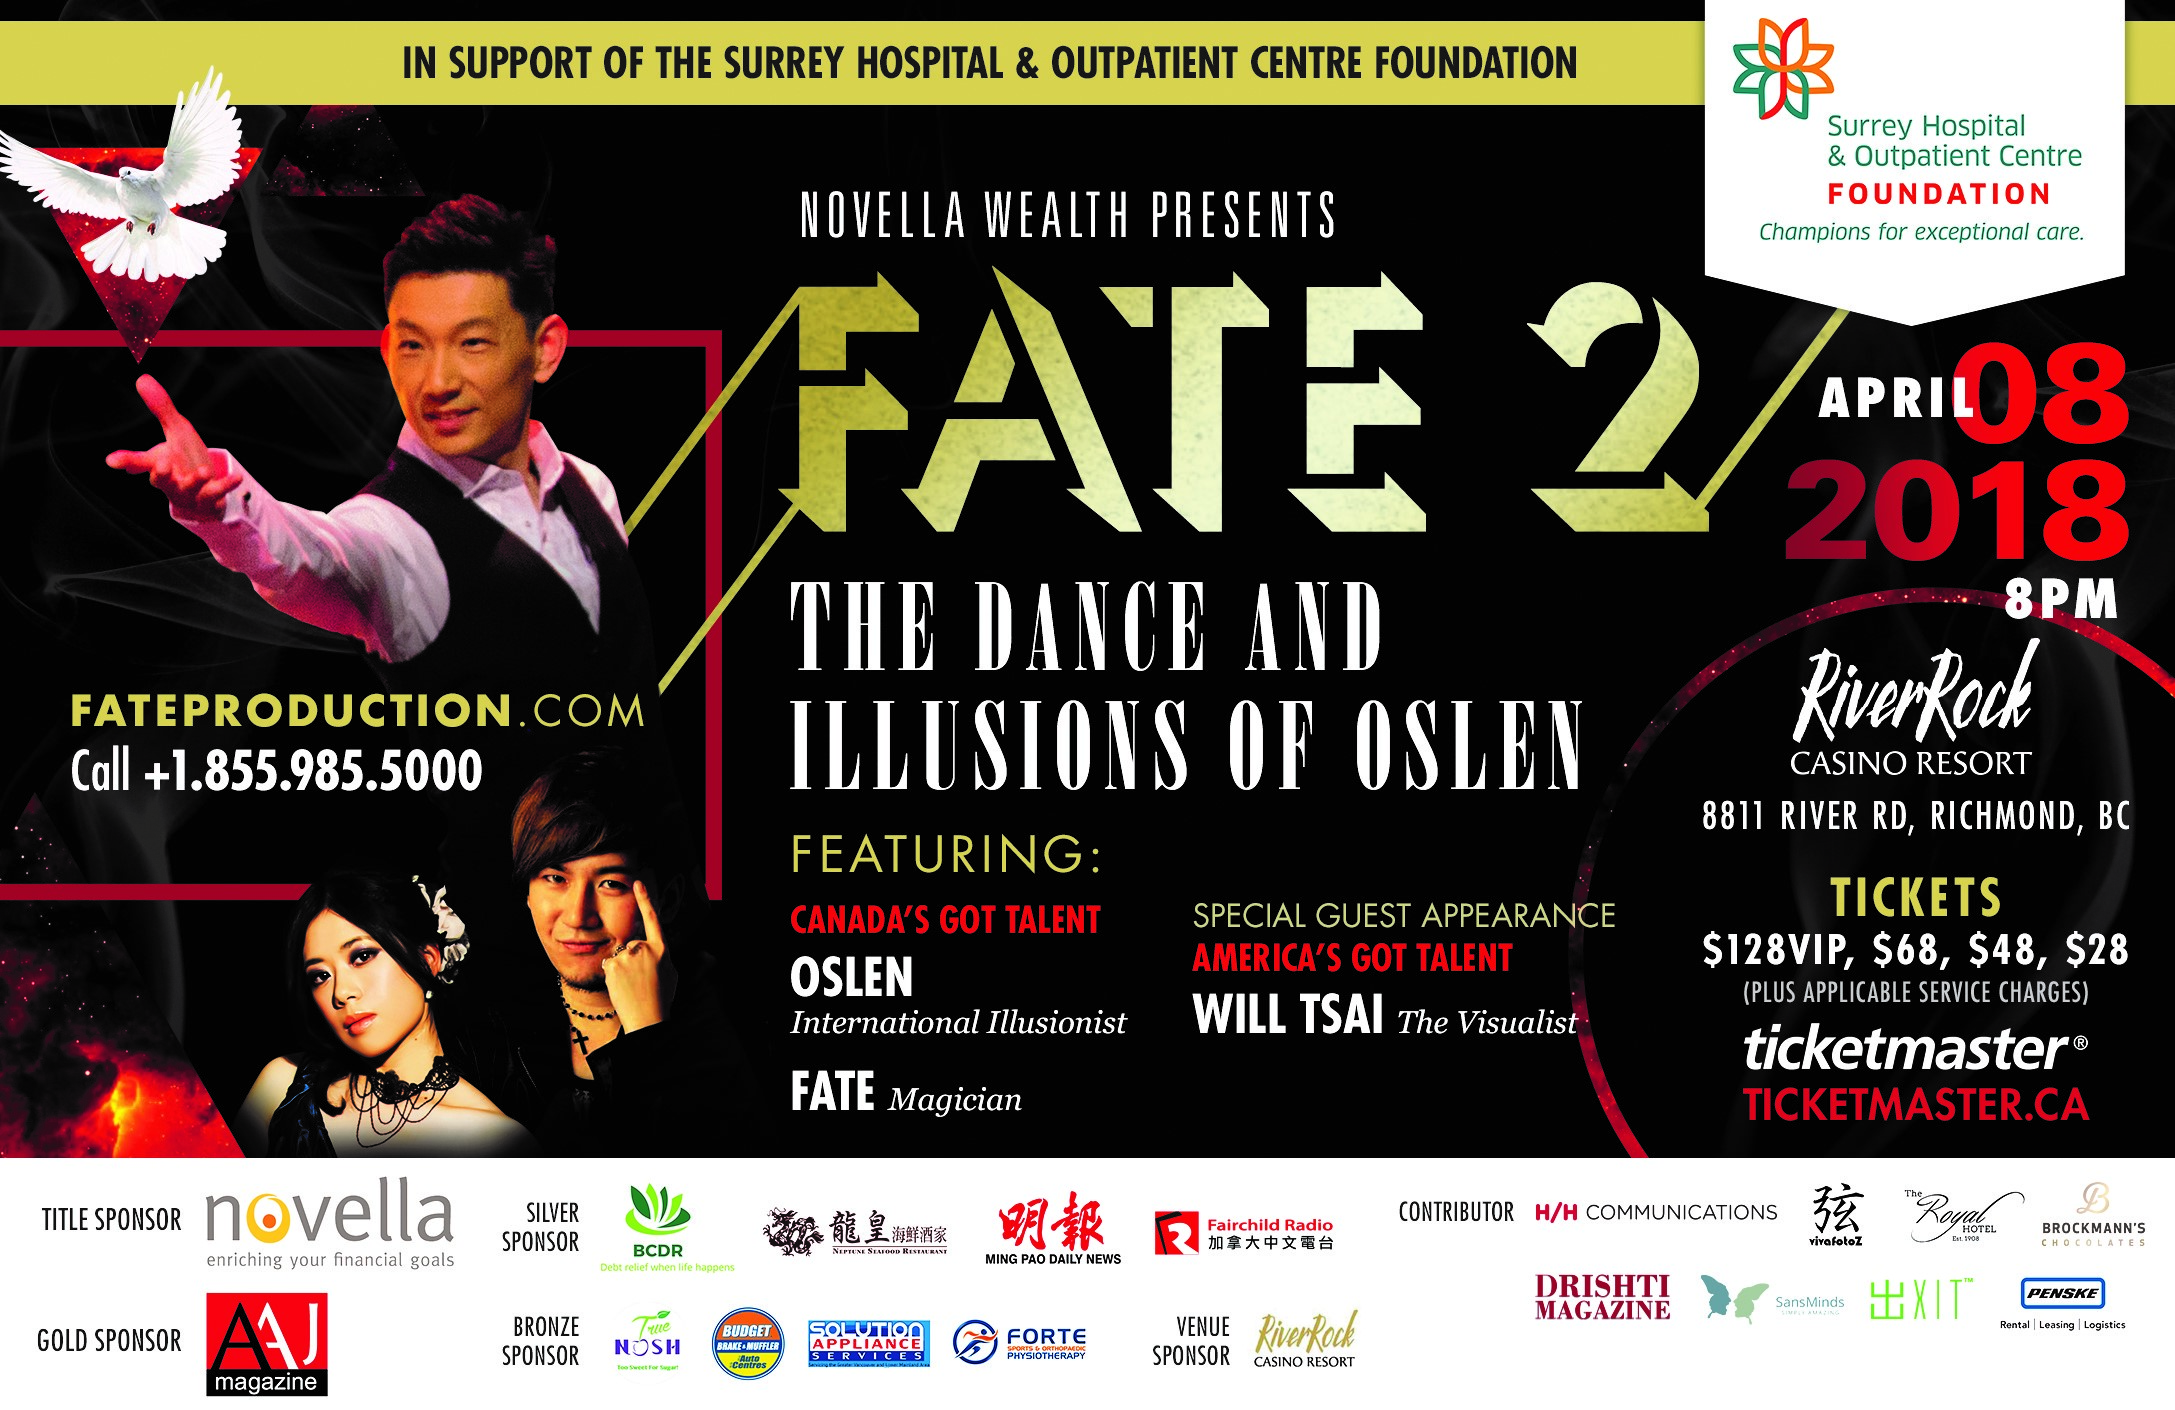 FATE 2: The Dance and Illusions of Oslen – In support of Surrey Hospital and Outpatient Centre Foundation